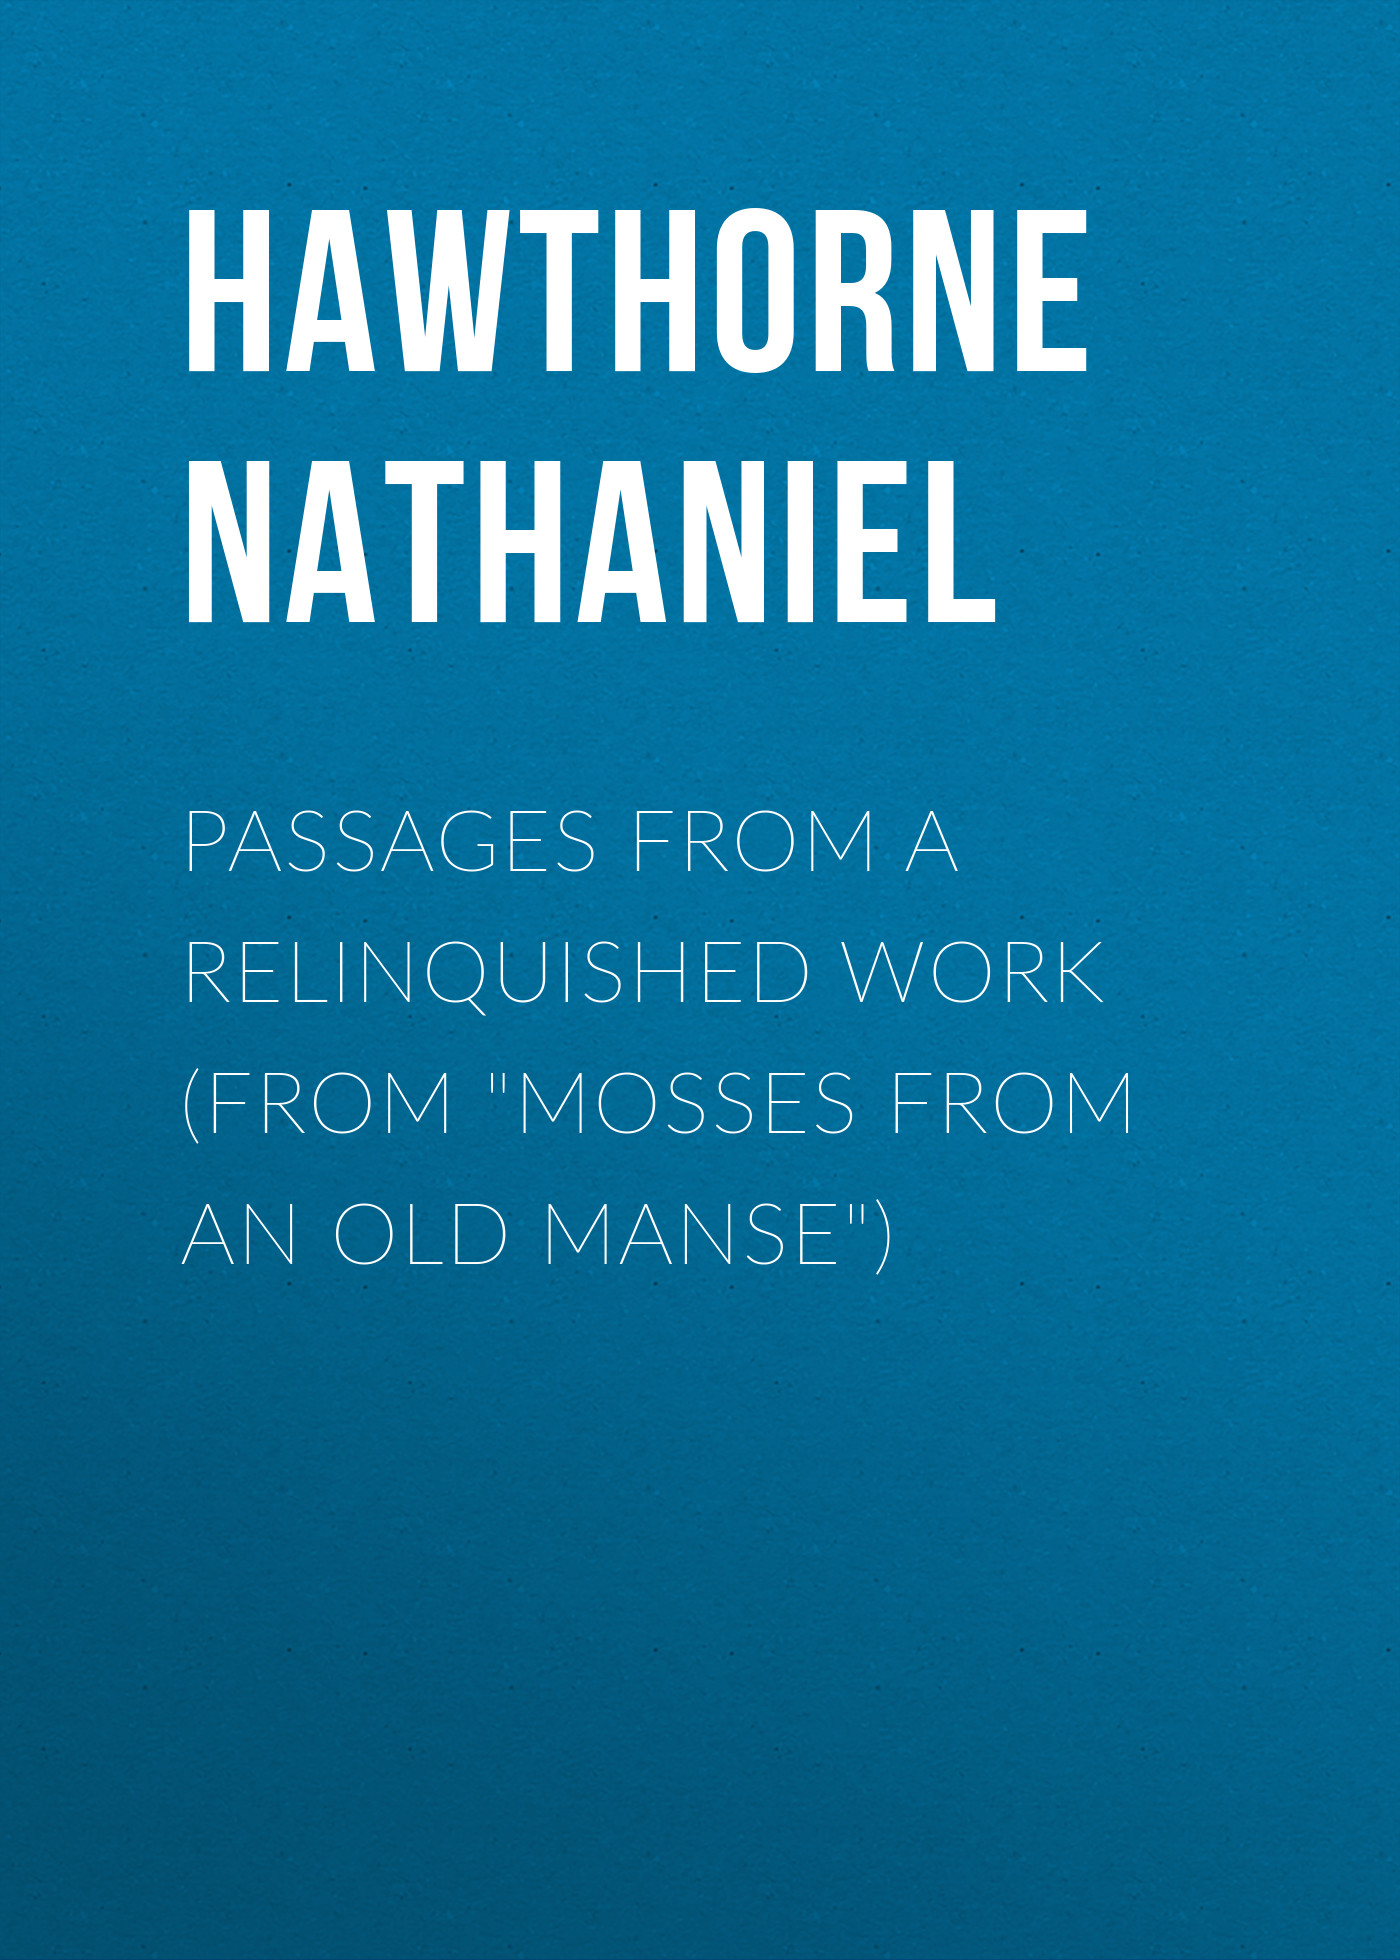 Hawthorne Nathaniel Passages from a Relinquished Work (From Mosses from an Old Manse) hawthorne nathaniel the hall of fantasy from mosses from an old manse